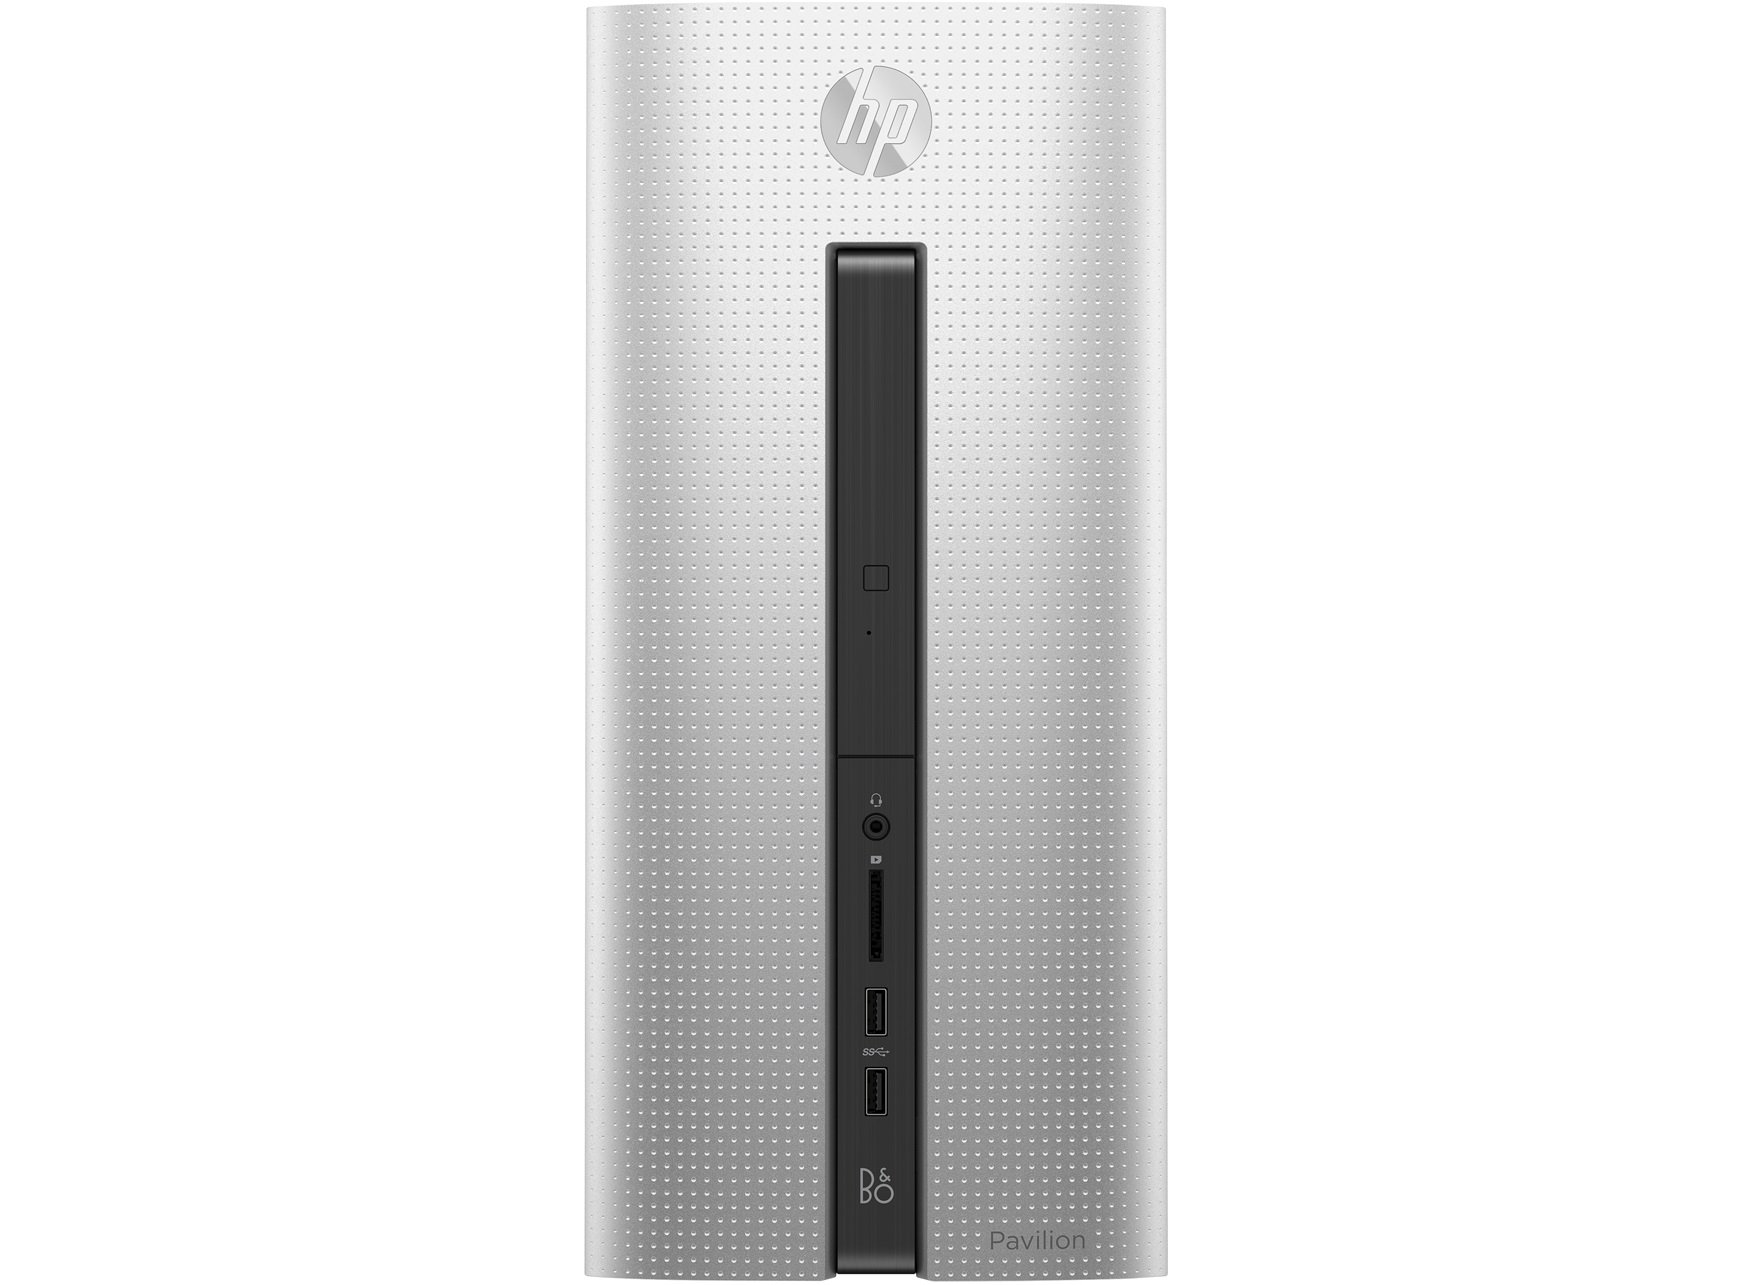 HP Desktop, Intel Core i3-4170, 3.7 GHz, 1 TB, Intel HD 4400, Windows 10